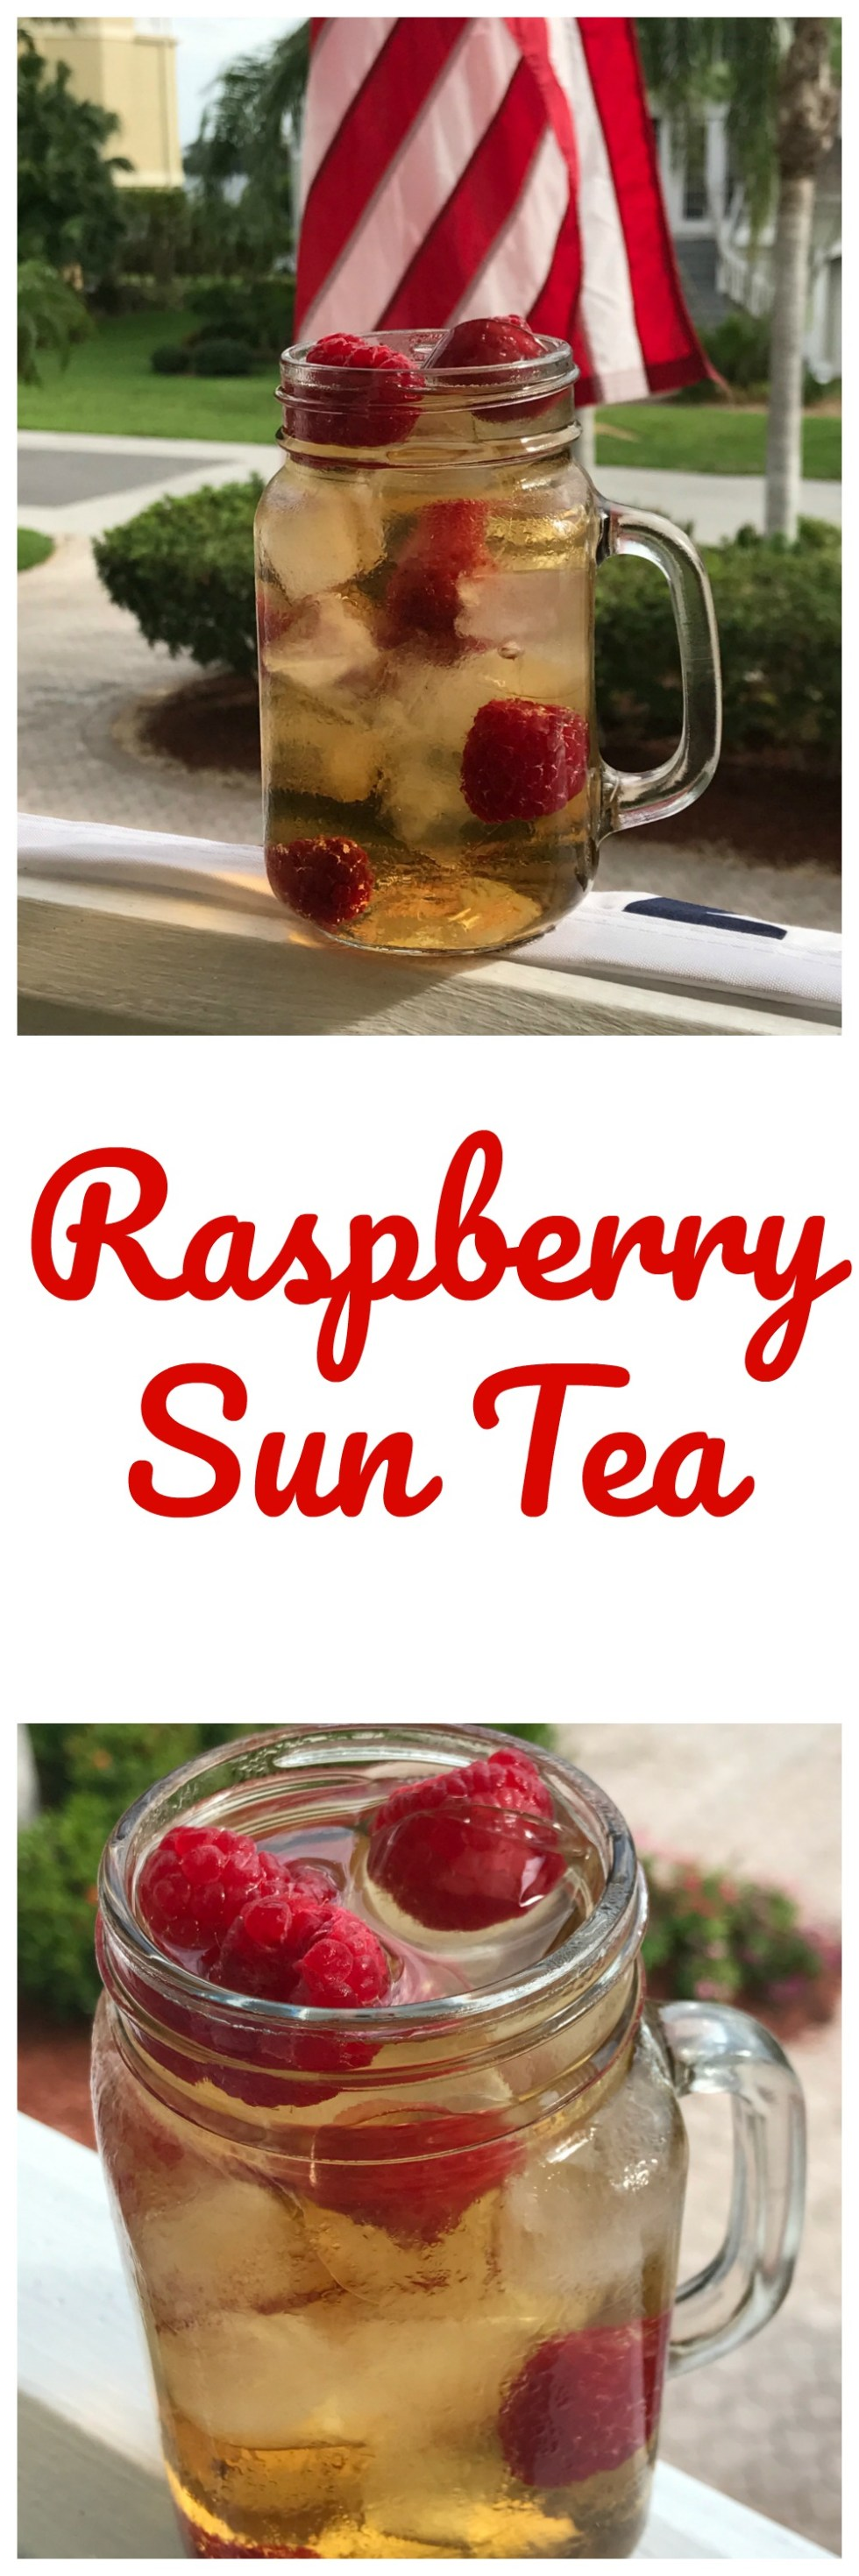 Cool off with a refreshing glass of raspberry sun tea.